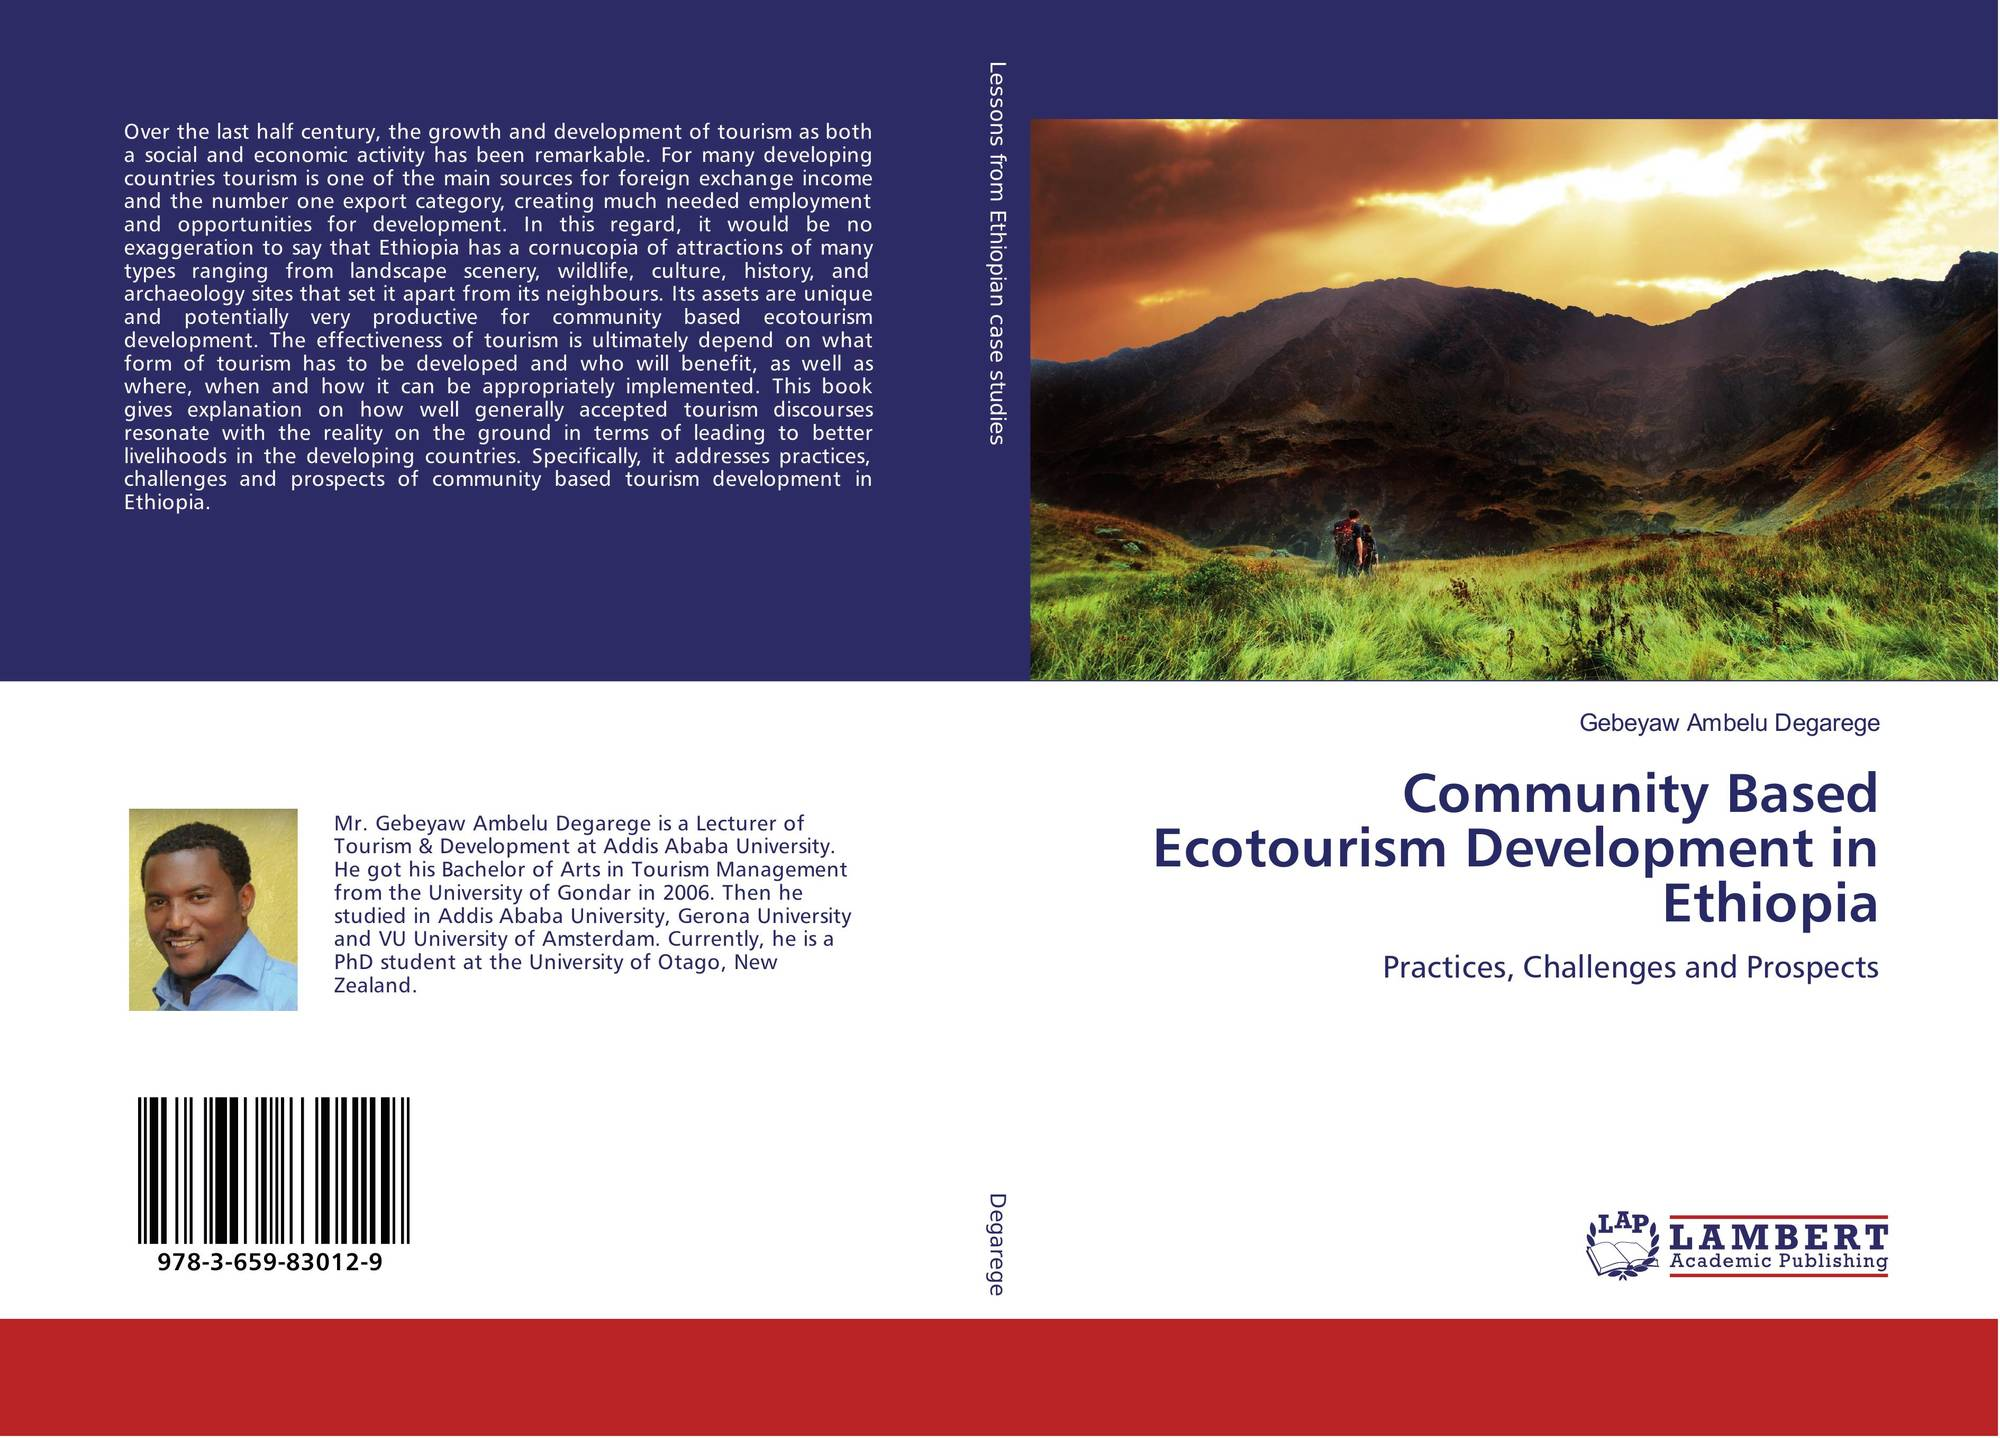 challenges and practices of tourism development in ethiopia pdf